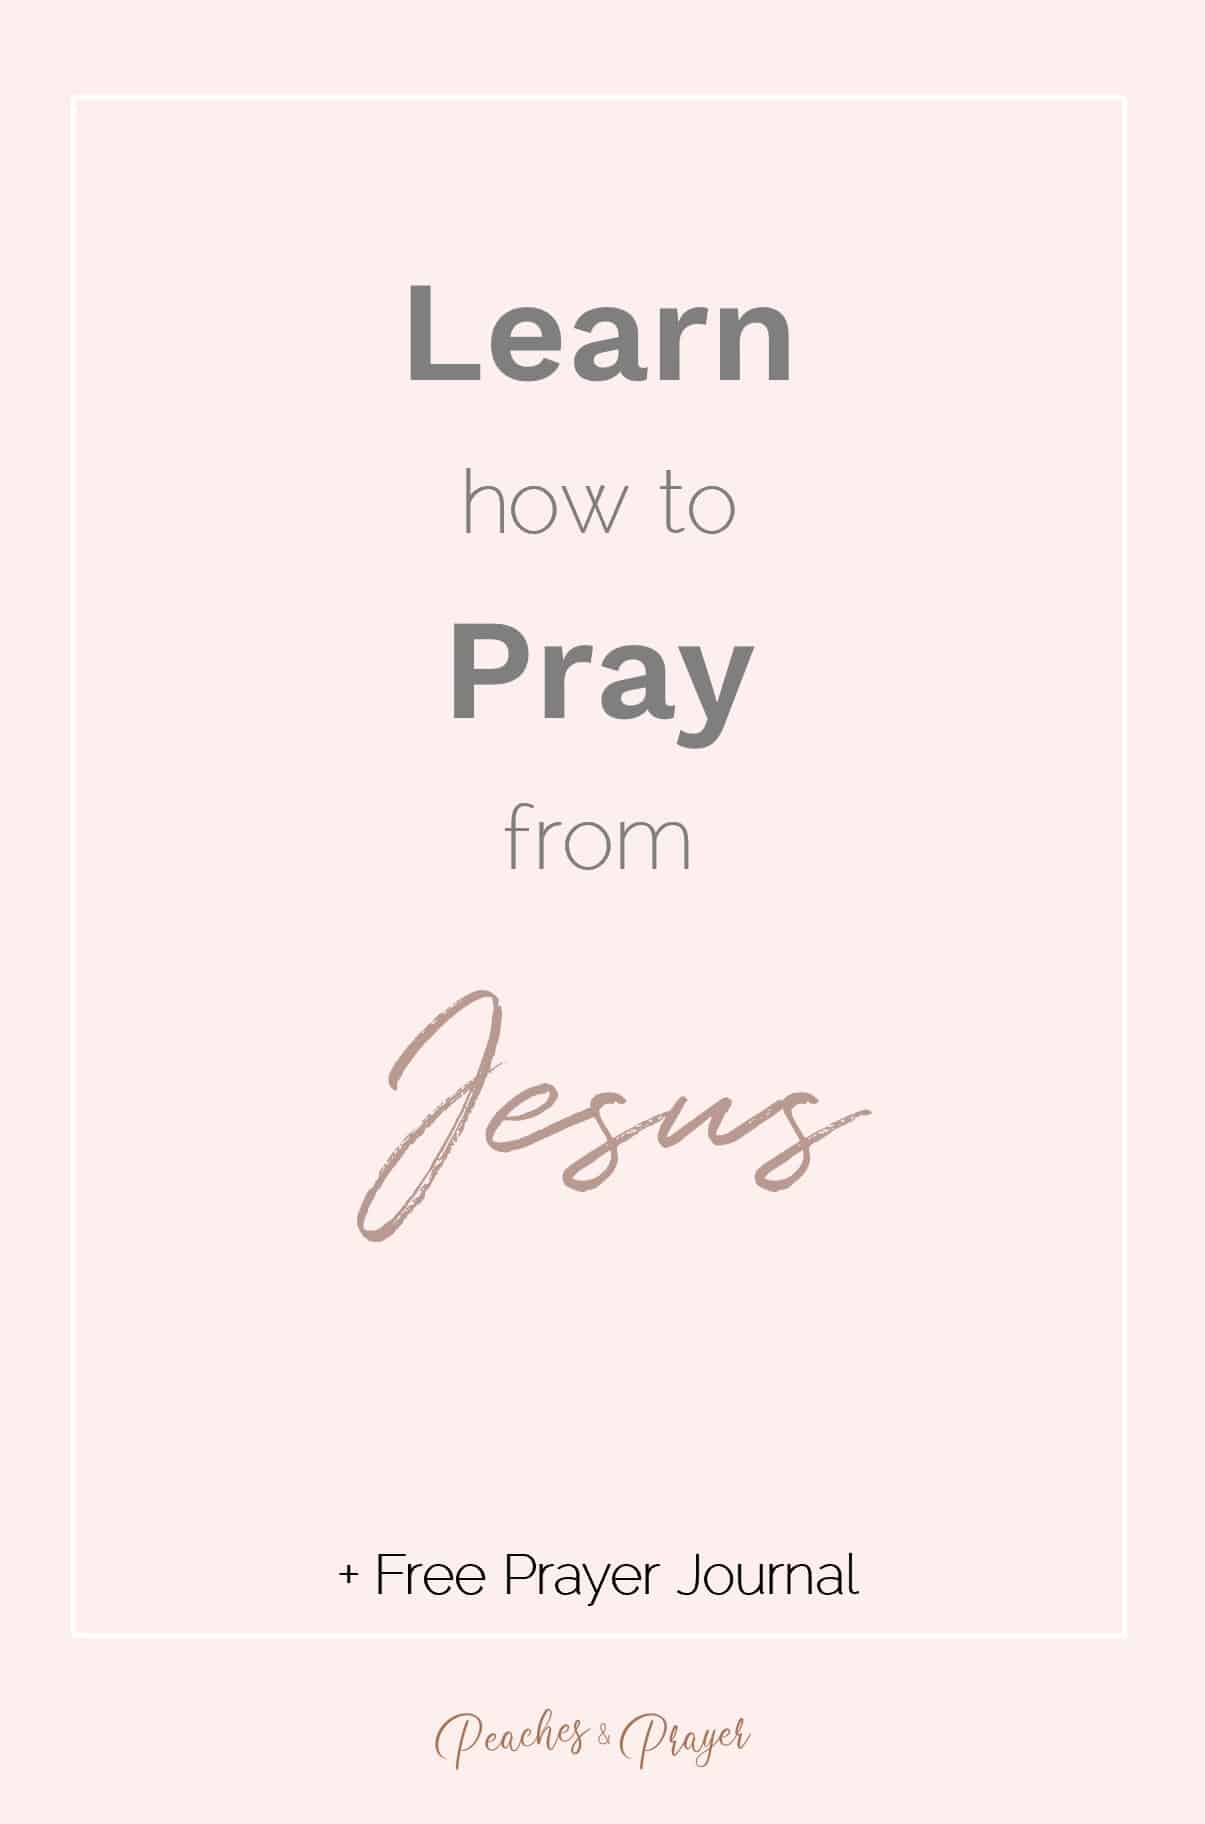 Learn how to pray from Jesus